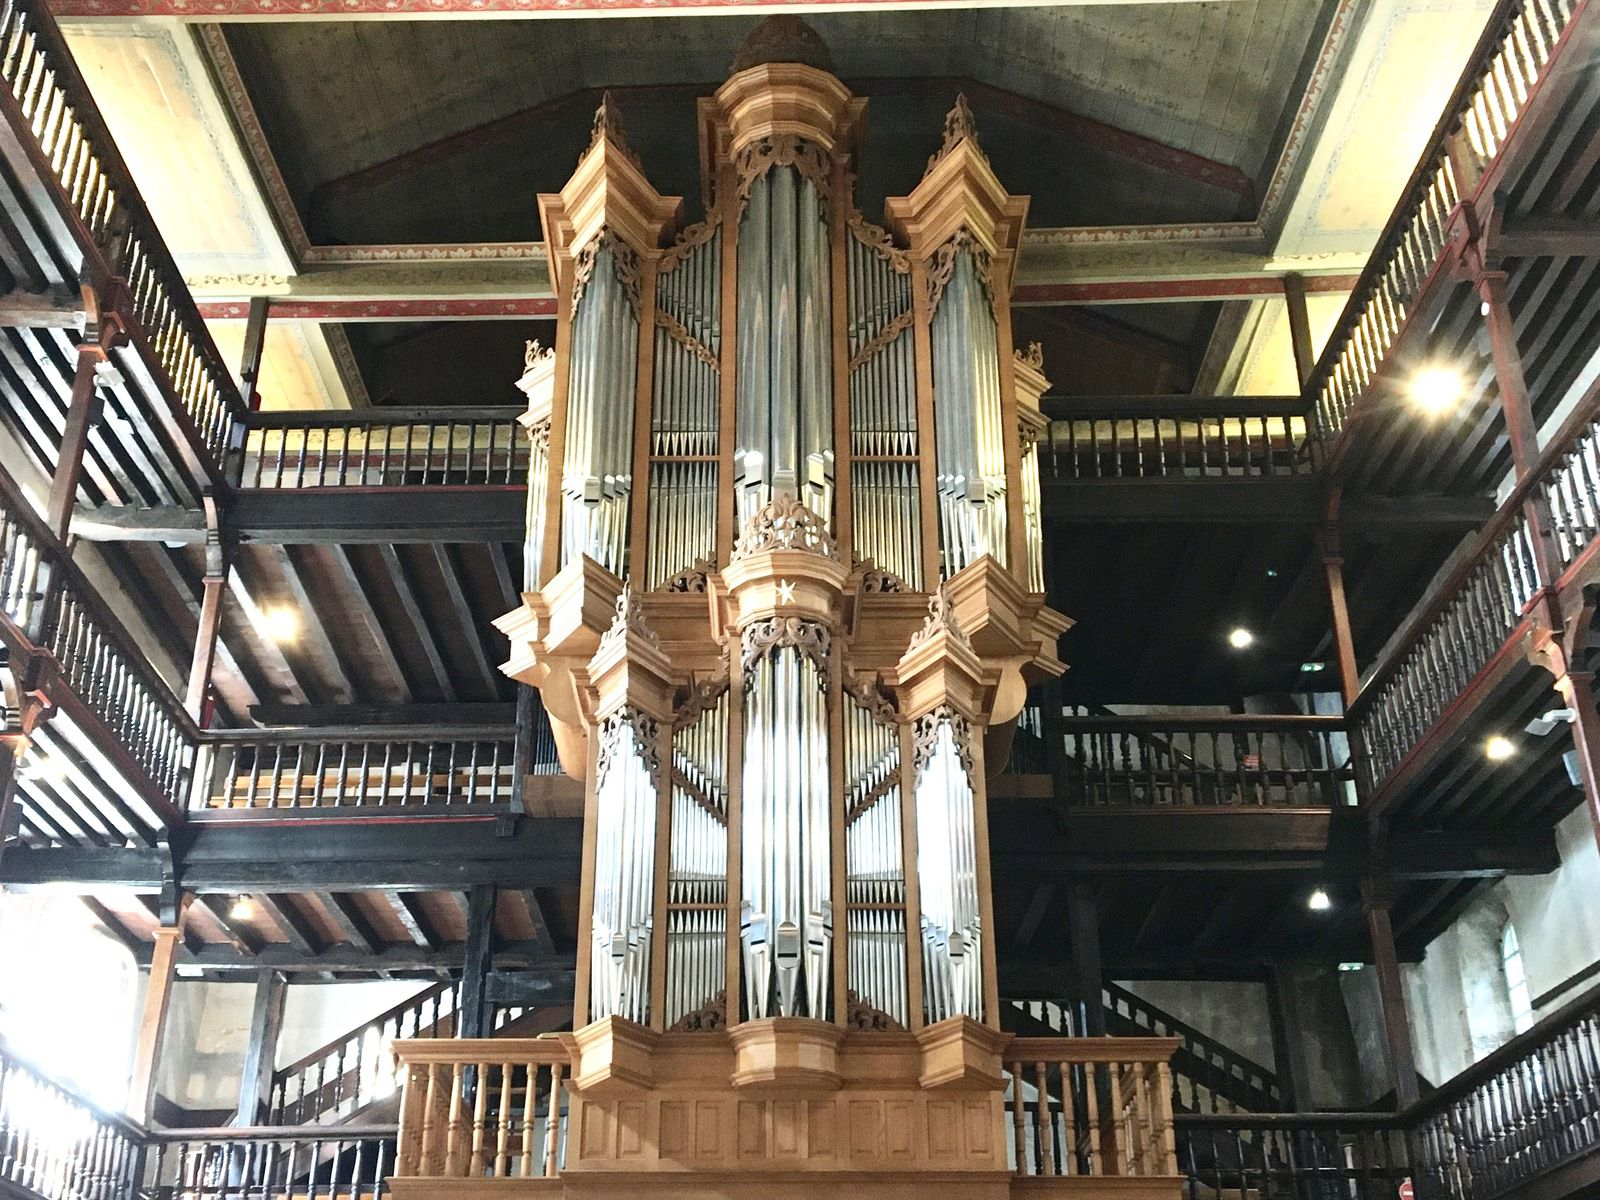 L'orgue de Domnique Thomas de l'Eglise de Ciboure au Pays Basque